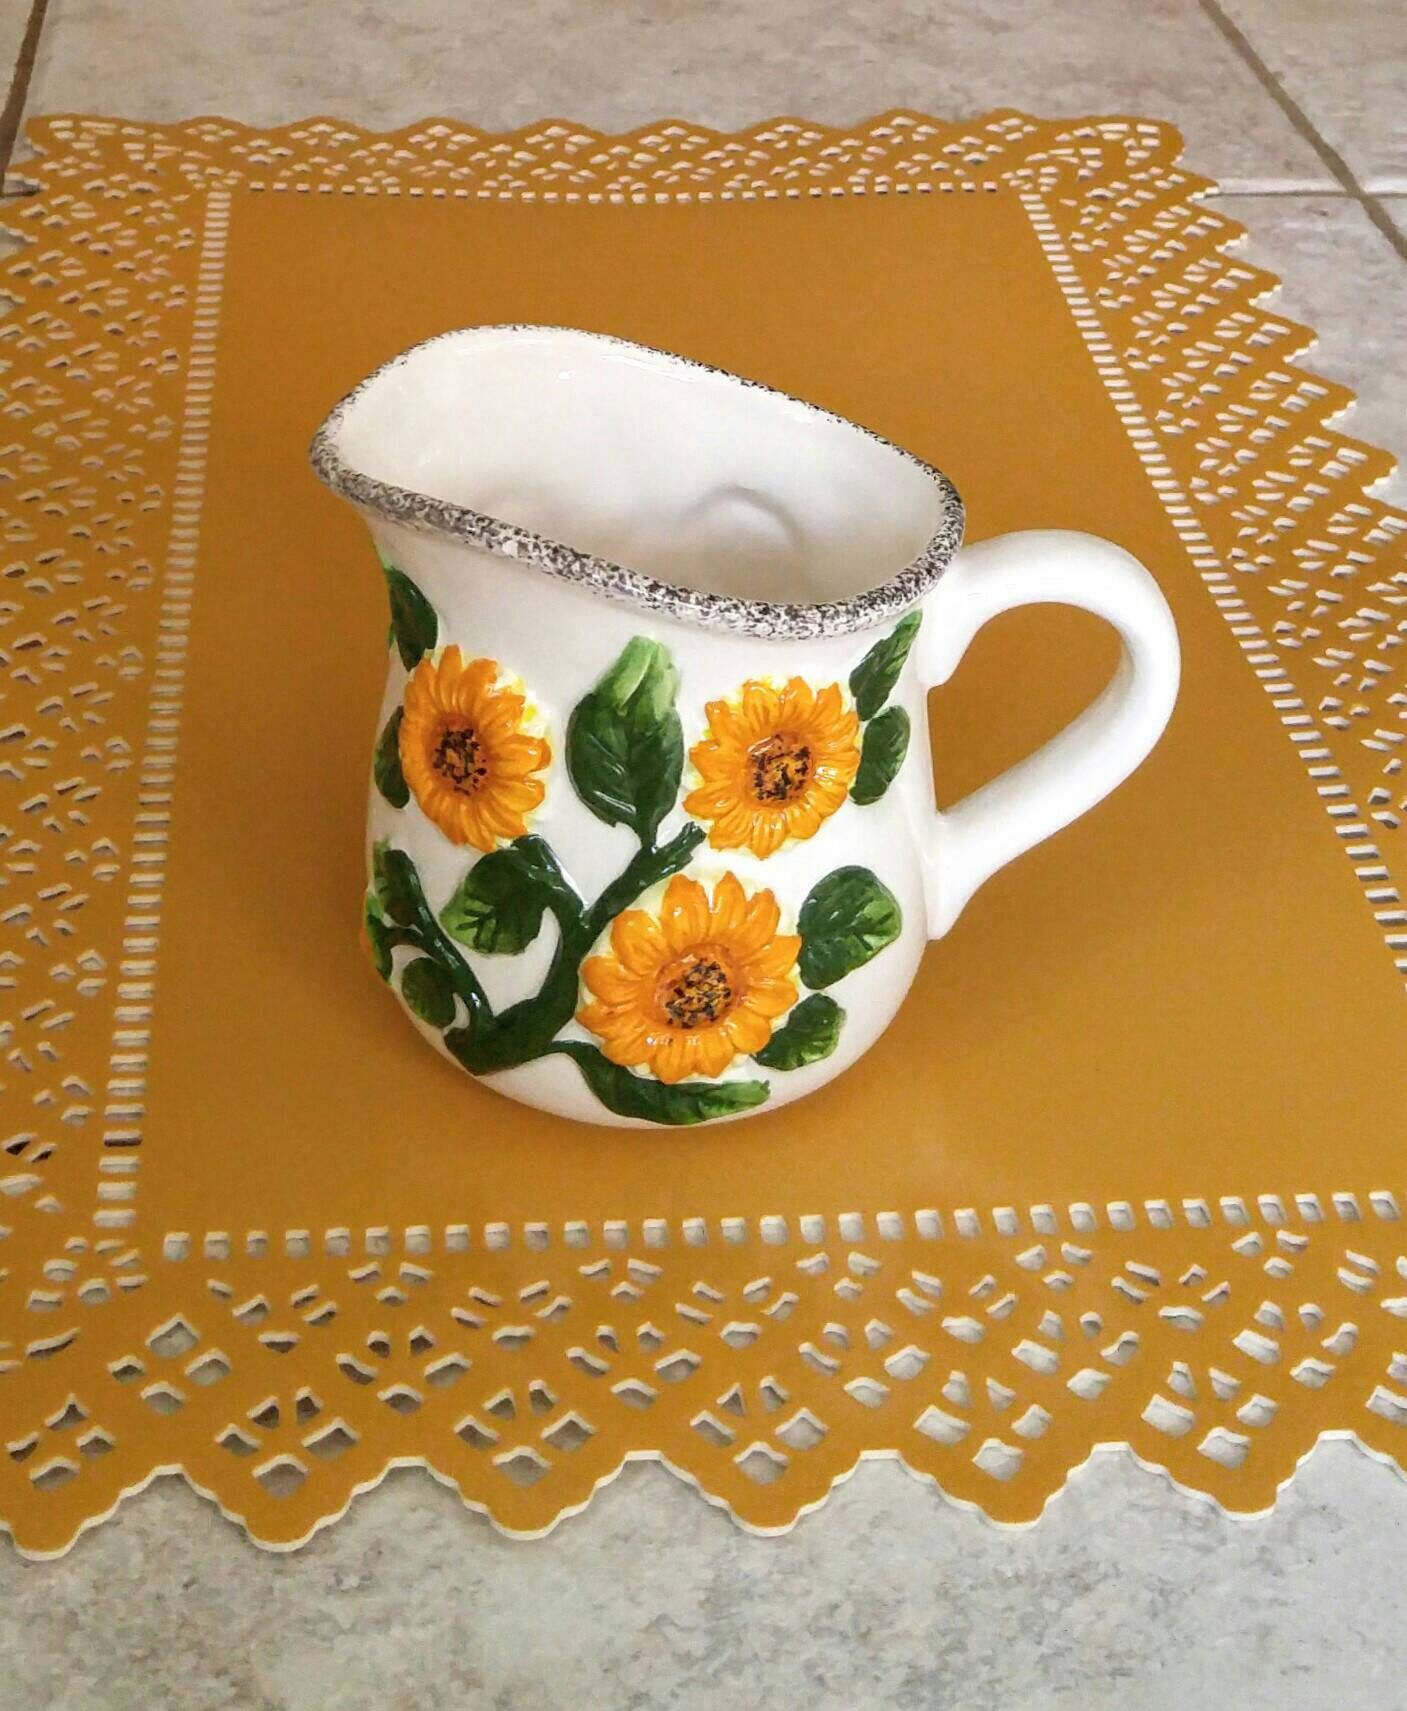 Vintage Sunflower Creamer Arc Hand-painted Embossed Sunflower Milk Pitcher Country Cabin Farmhouse Decor Retro Kitchen Tableware Home Living : arc tableware - pezcame.com